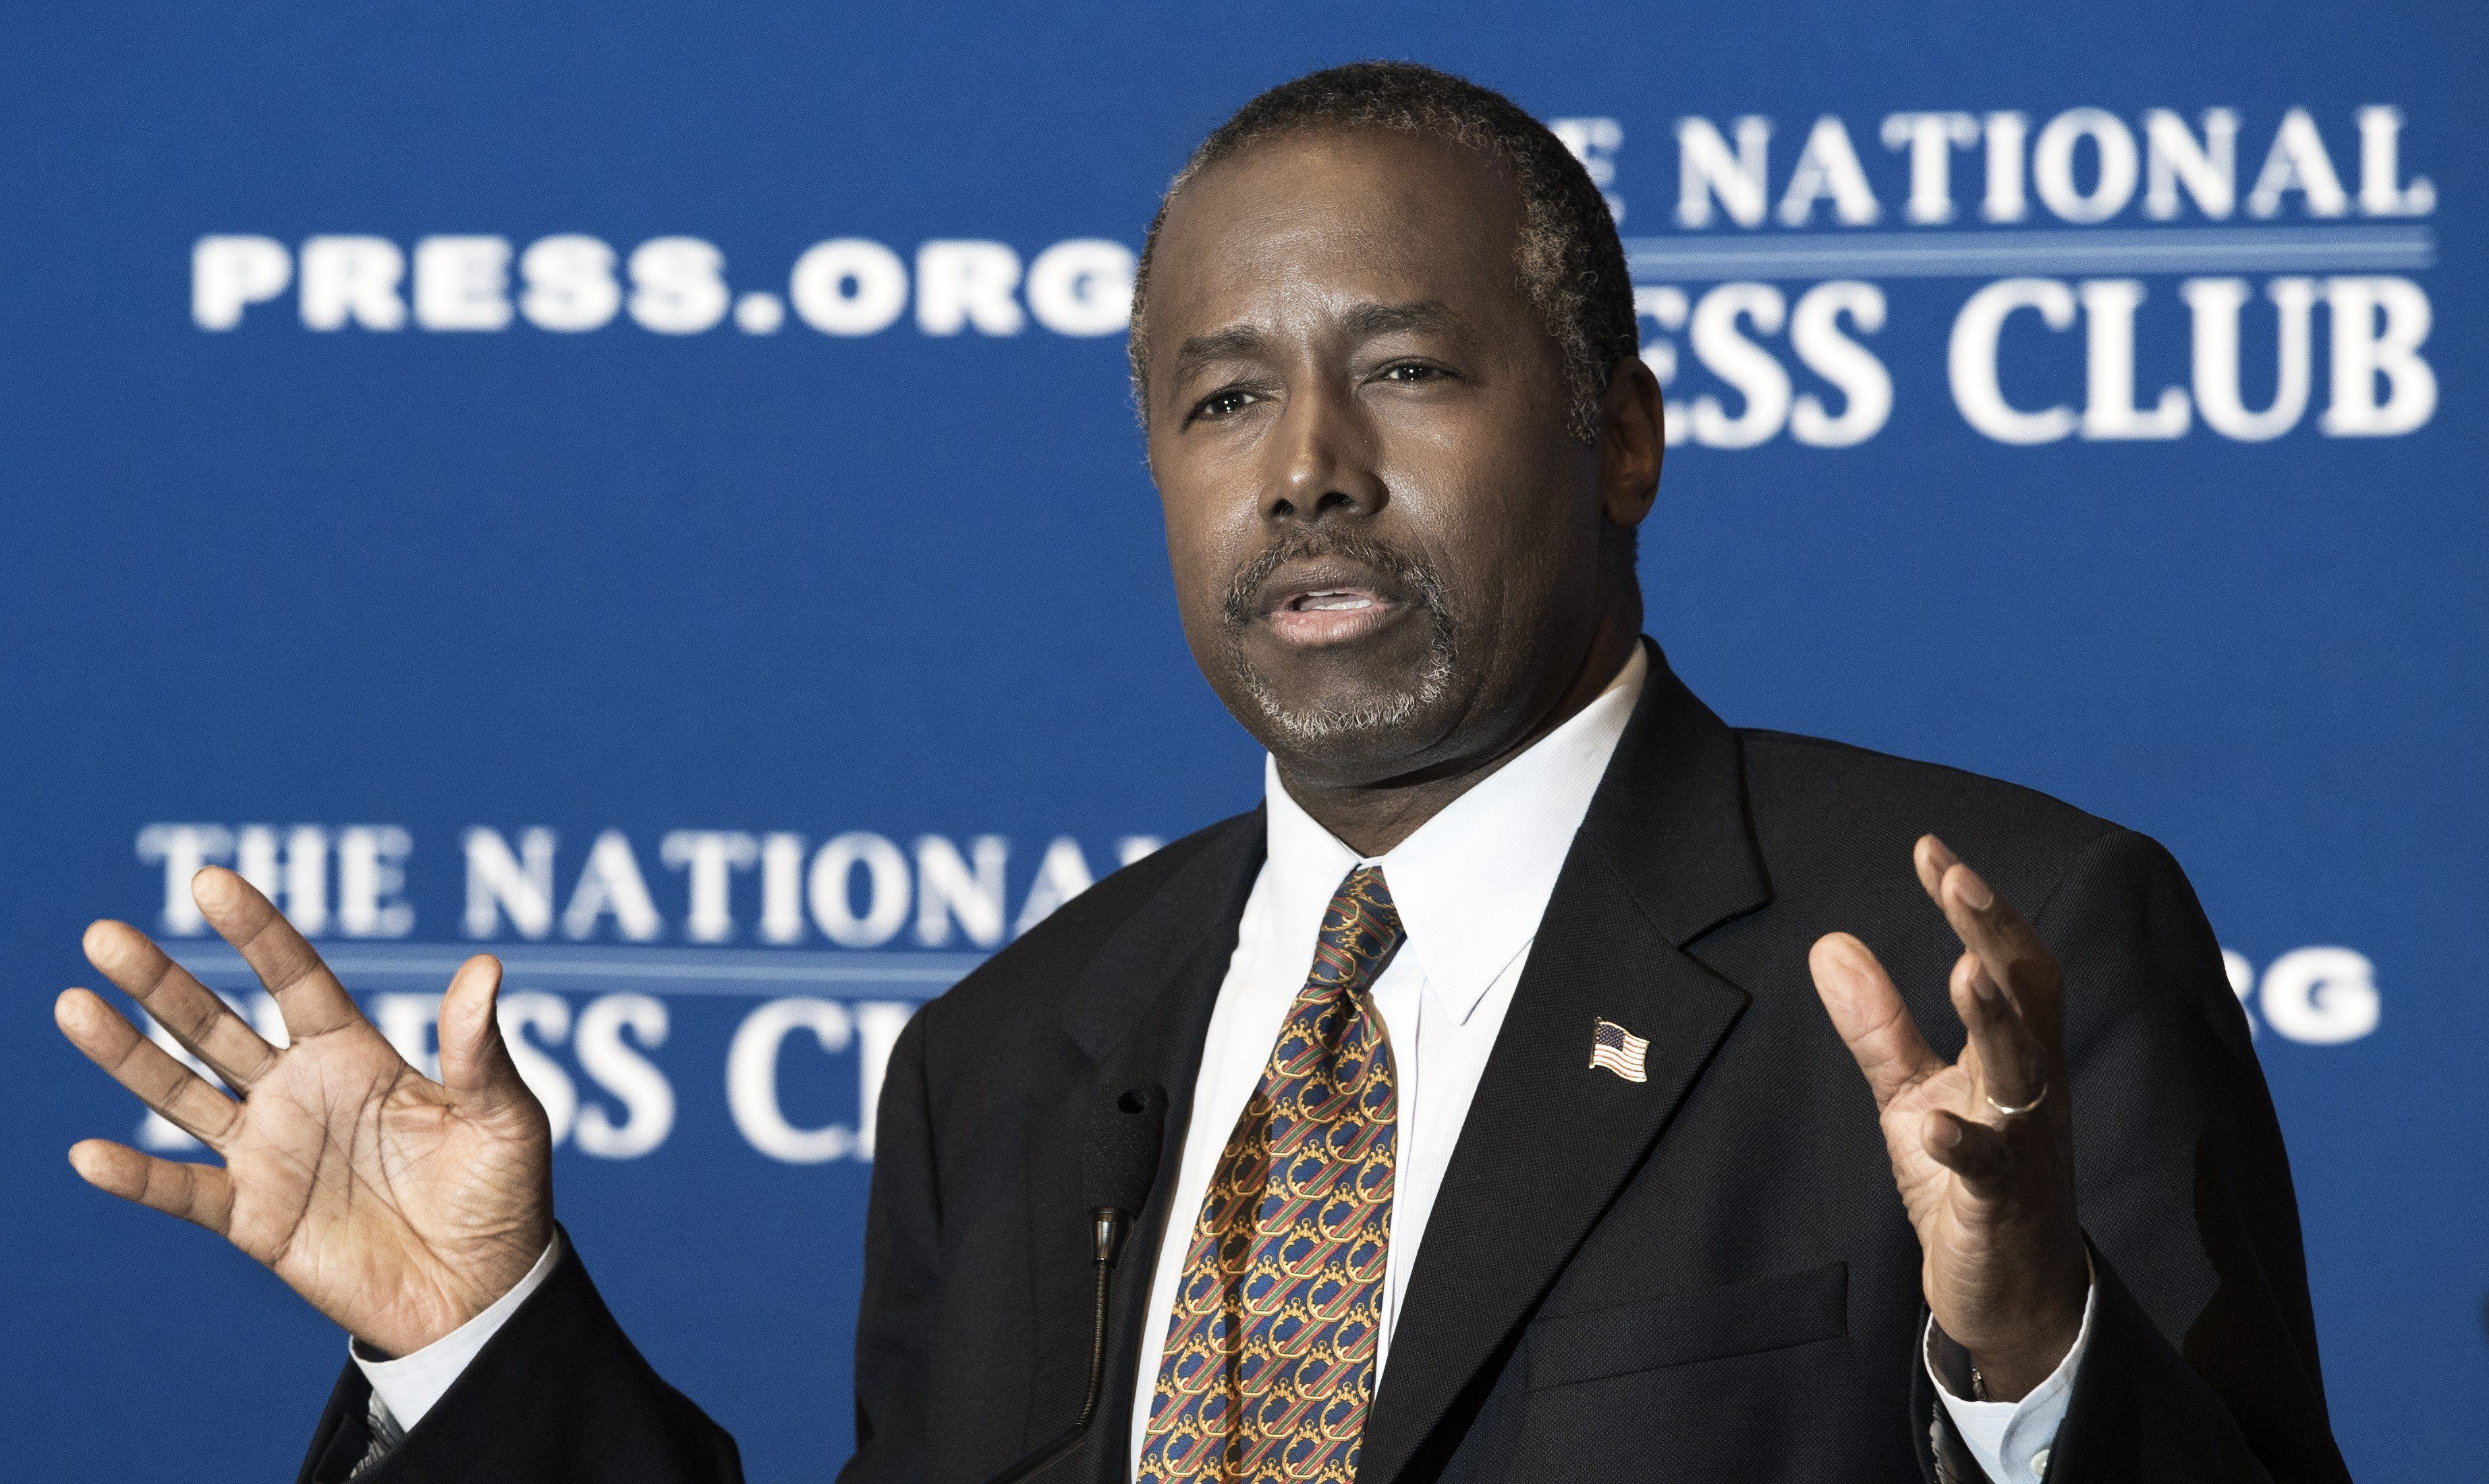 Republican presidential candidate Ben Carson gestures as he discuss his new book 'A More Perfect Union: What We the People Can Do To Reclaim Our Constitutional Liberties' at the National Press Club in Washington, DC on October 9, 2015. Republican White House hopeful Ben Carson said he stood by controversial comments linking gun control to the Holocaust, as he argued for arming staff in schools to prevent future mass shootings.     AFP Photo/PAUL J. RICHARDS        (Photo credit should read PAUL J. RICHARDS/AFP/Getty Images)